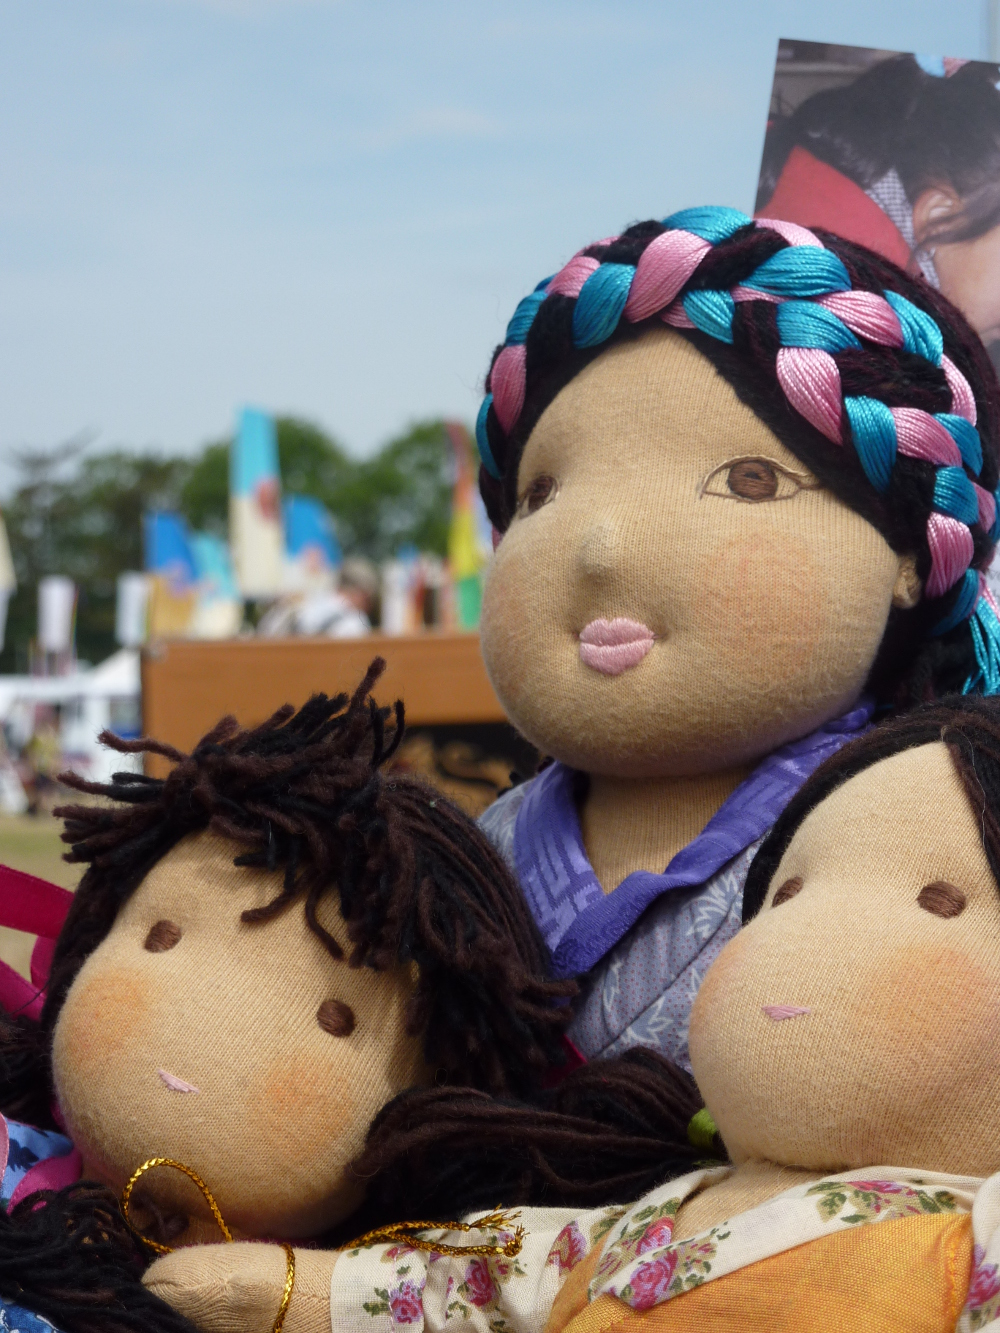 Report and photos from WOMAD 2013